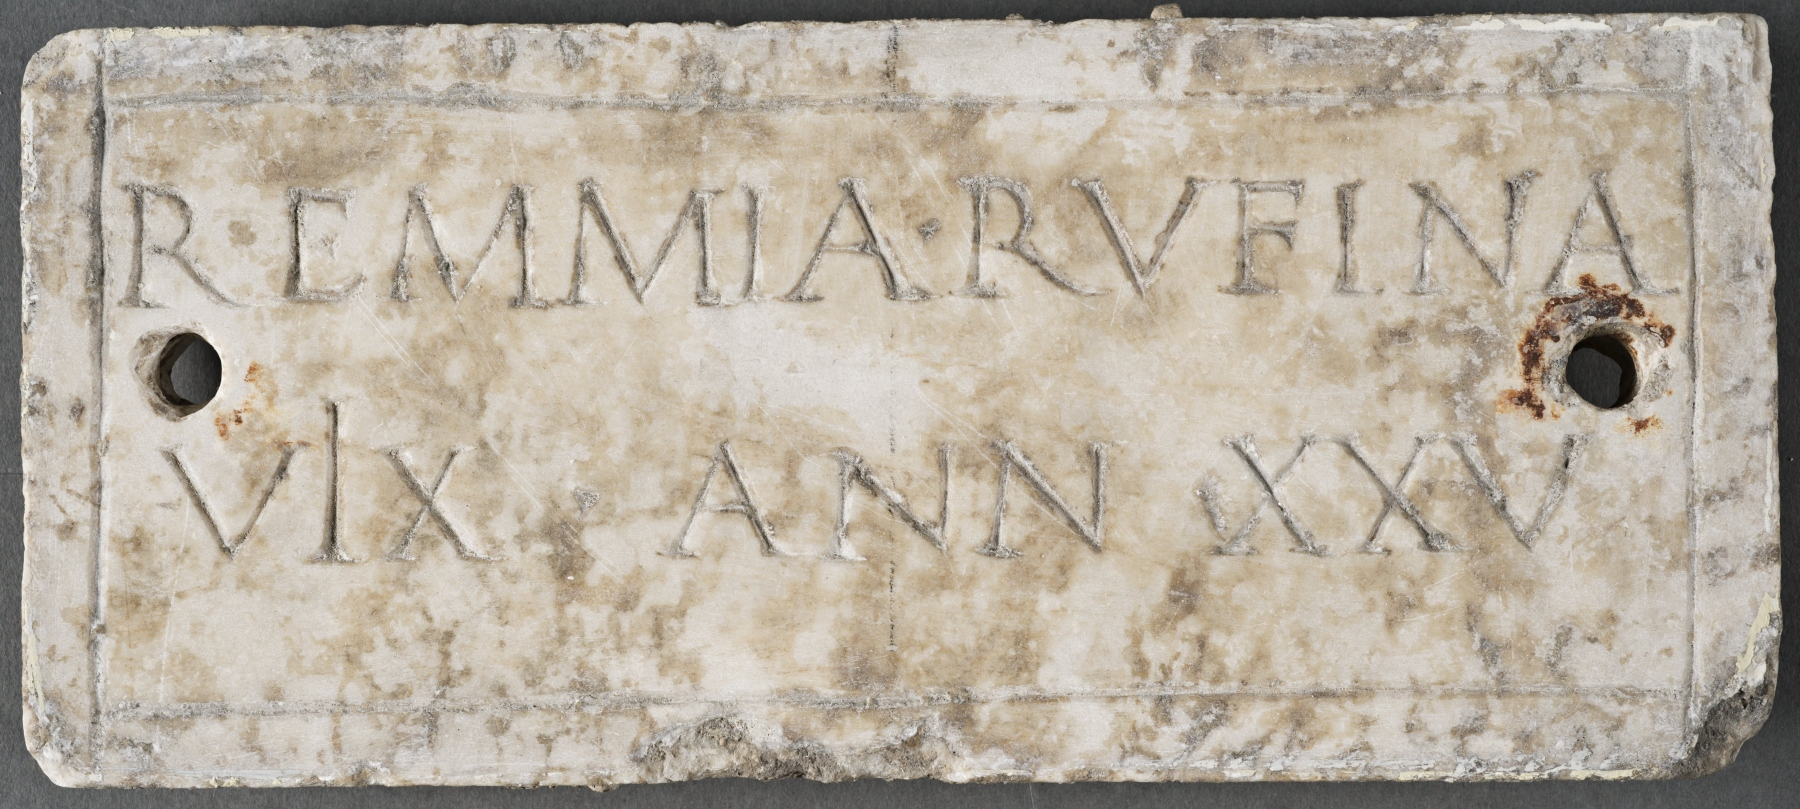 Funeral plaque for Remmia Rufina